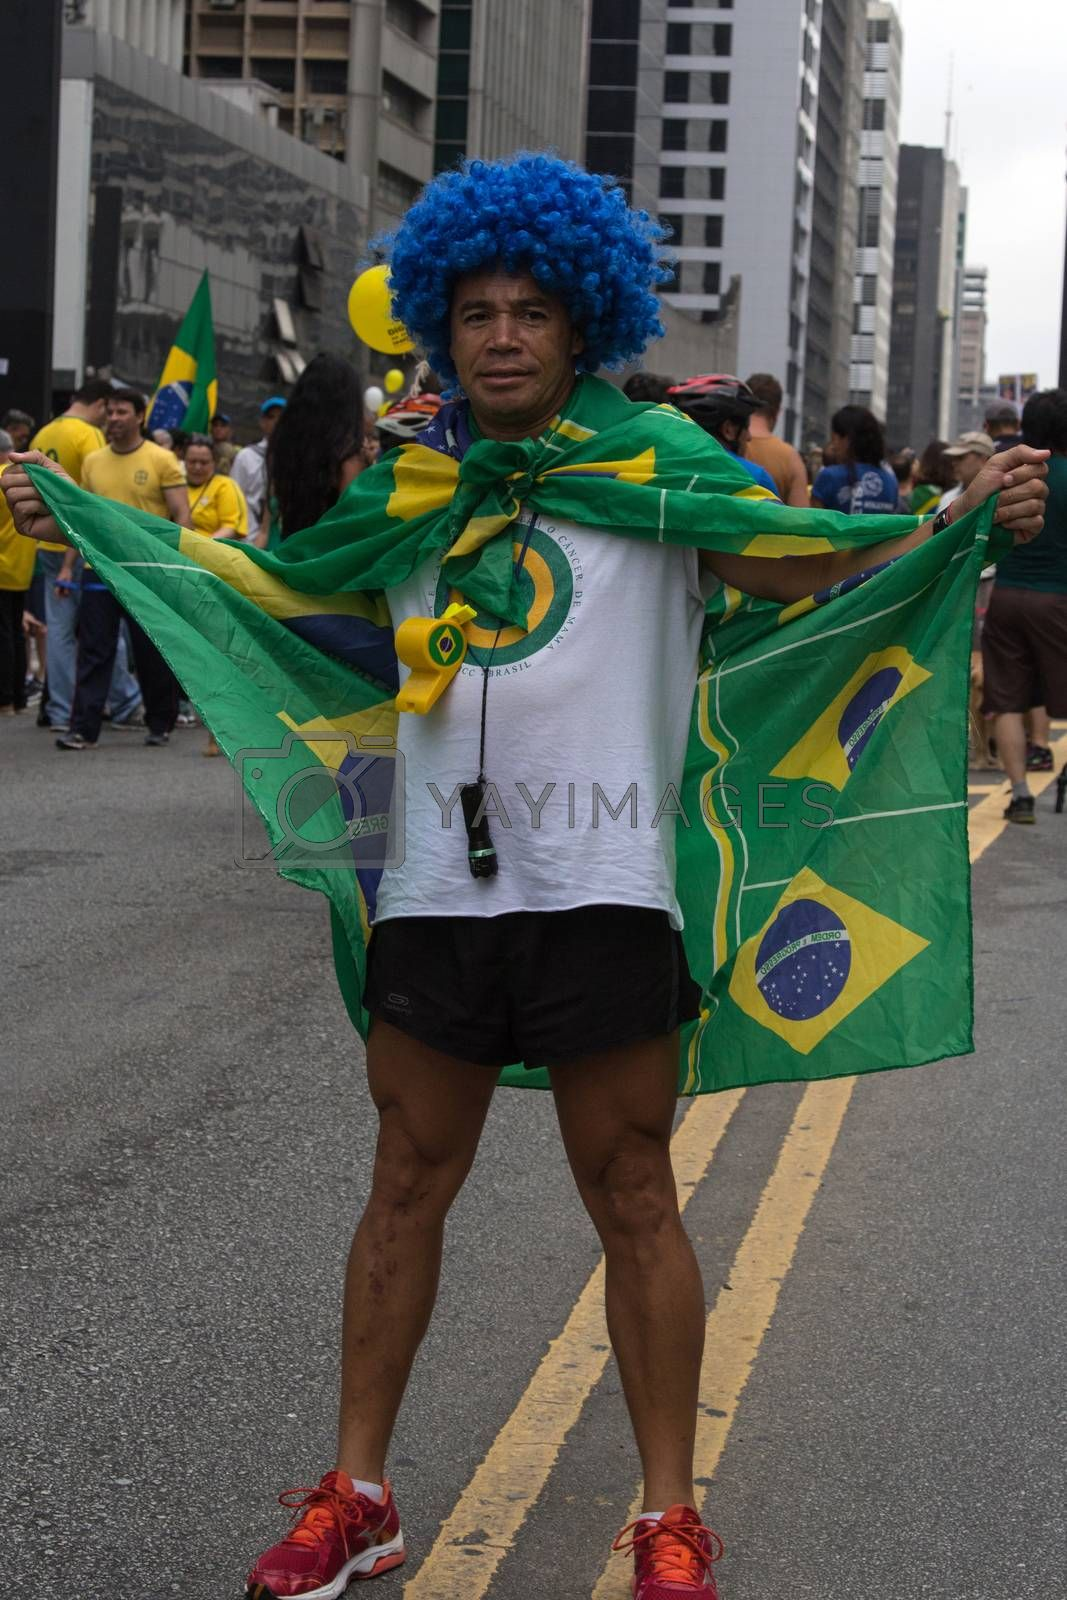 Sao Paulo Brazil March 13, 2016: One unidentified man in the biggest protest against federal government corruption in Sao Paulo.